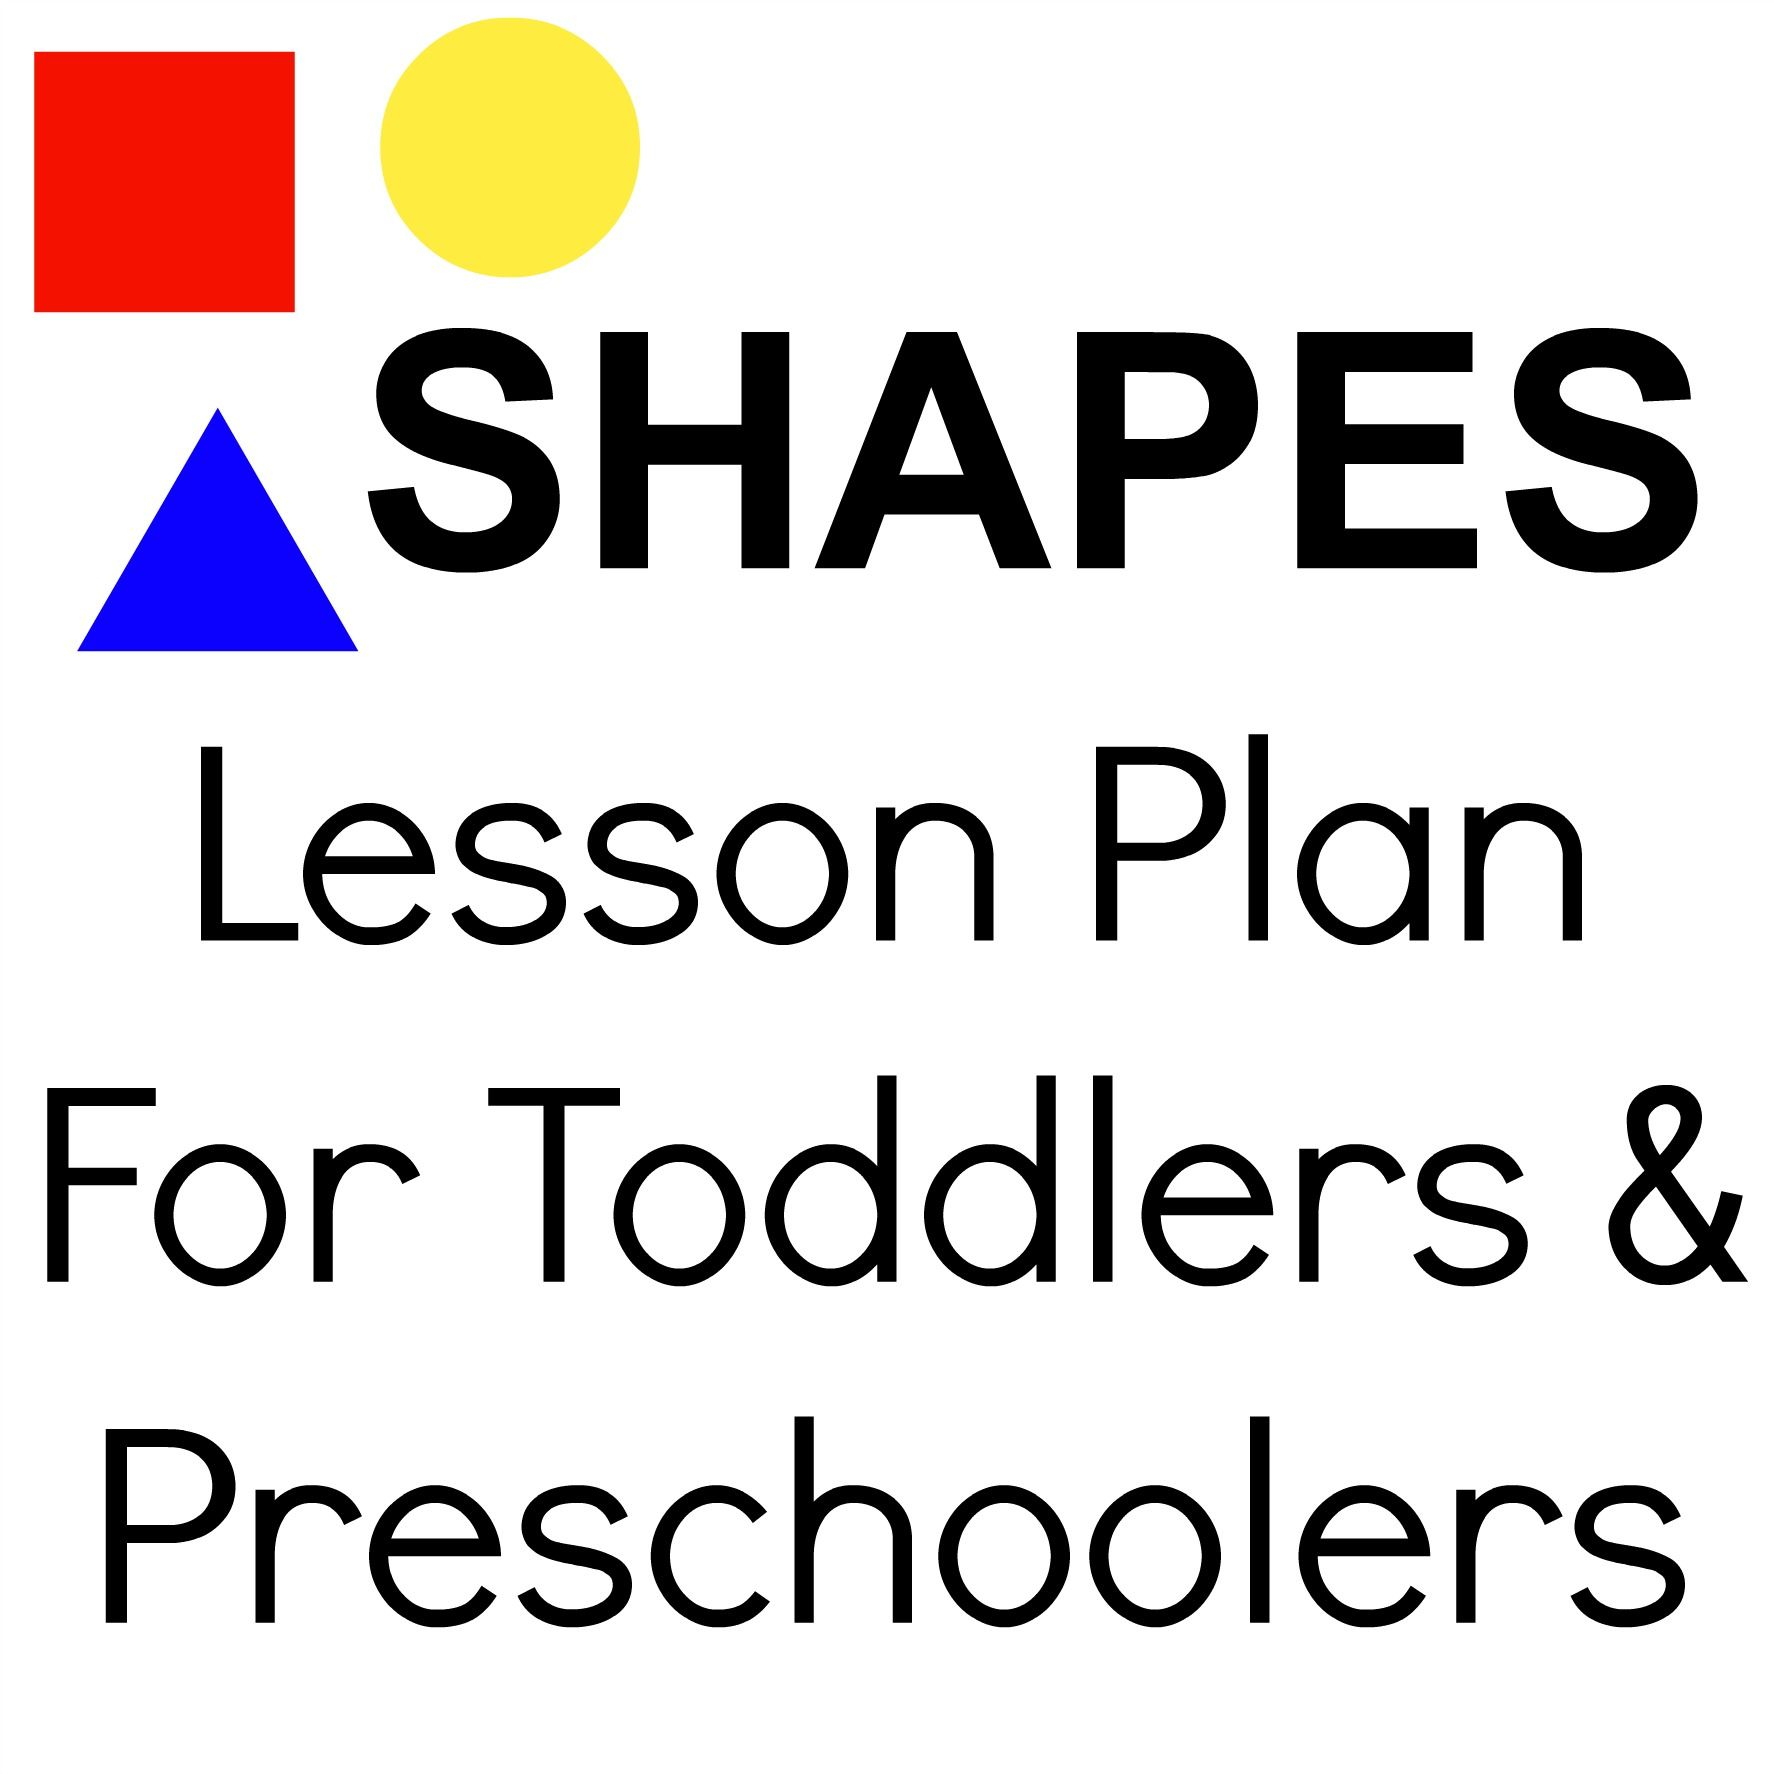 plan of activities Find and save ideas about preschool lesson plans on pinterest | see more ideas about pre school, preschool lessons and toddler lesson plans.